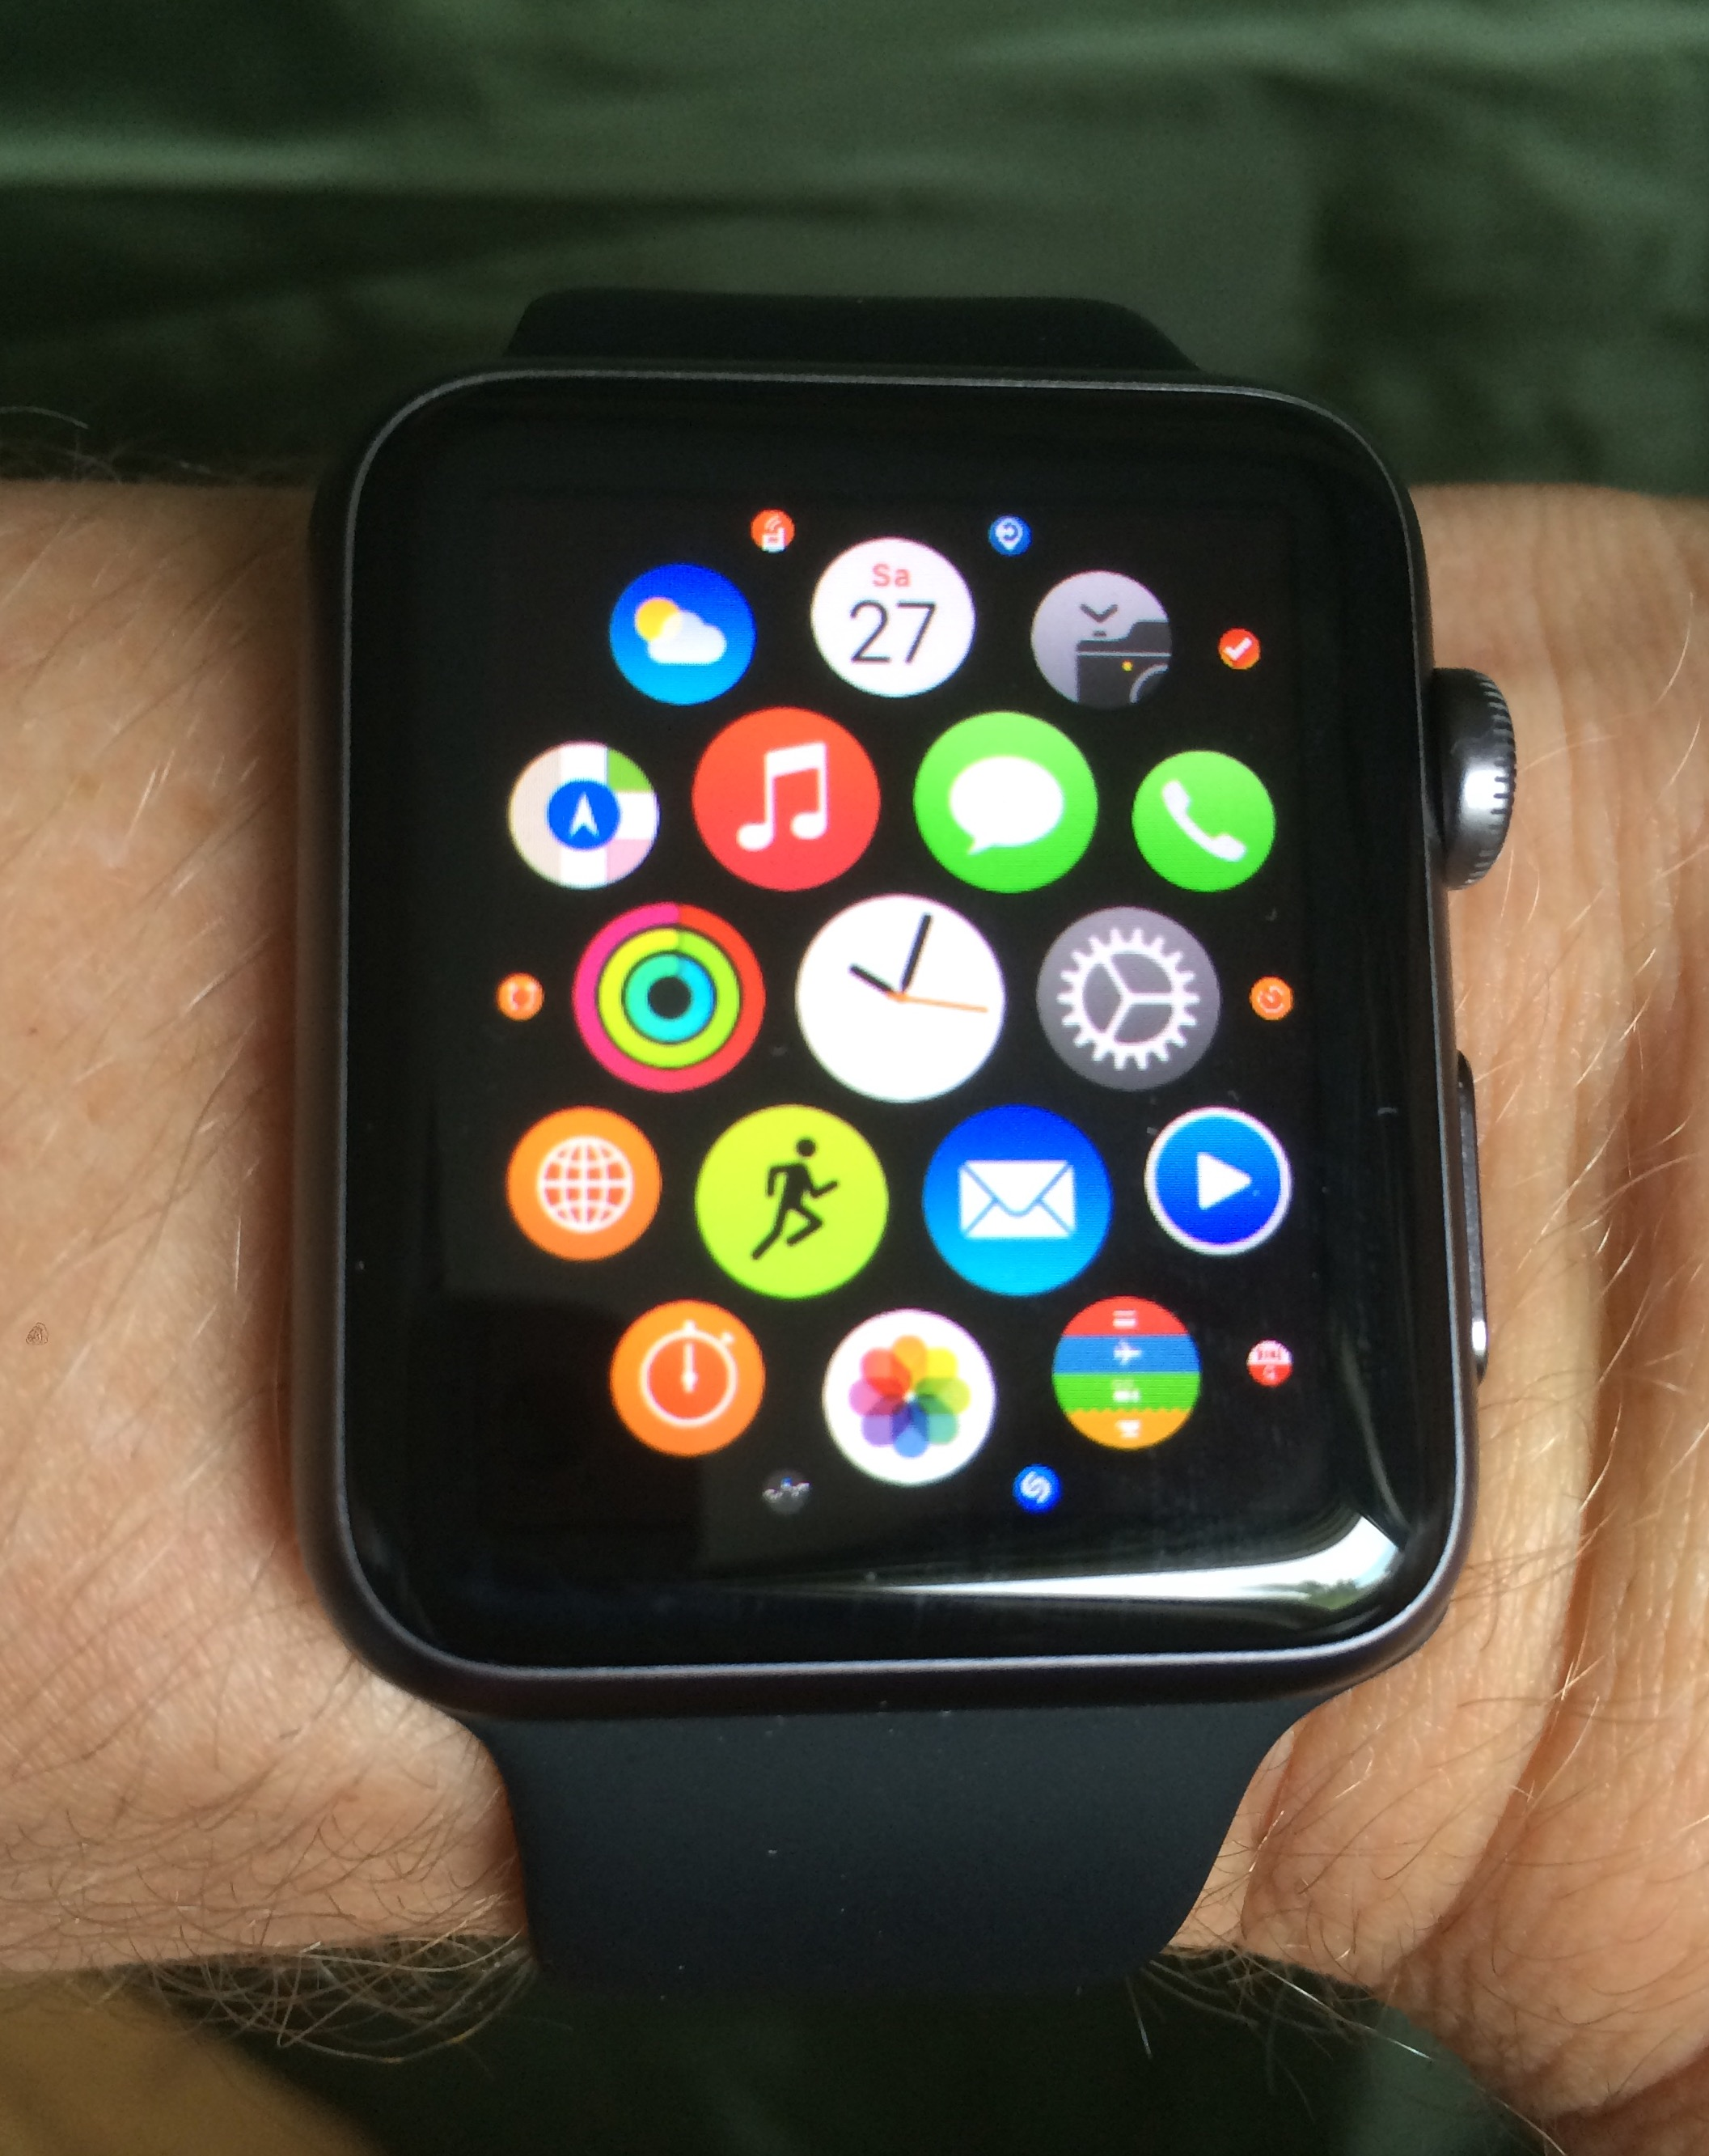 Will You Want to Buy anApple Watch?